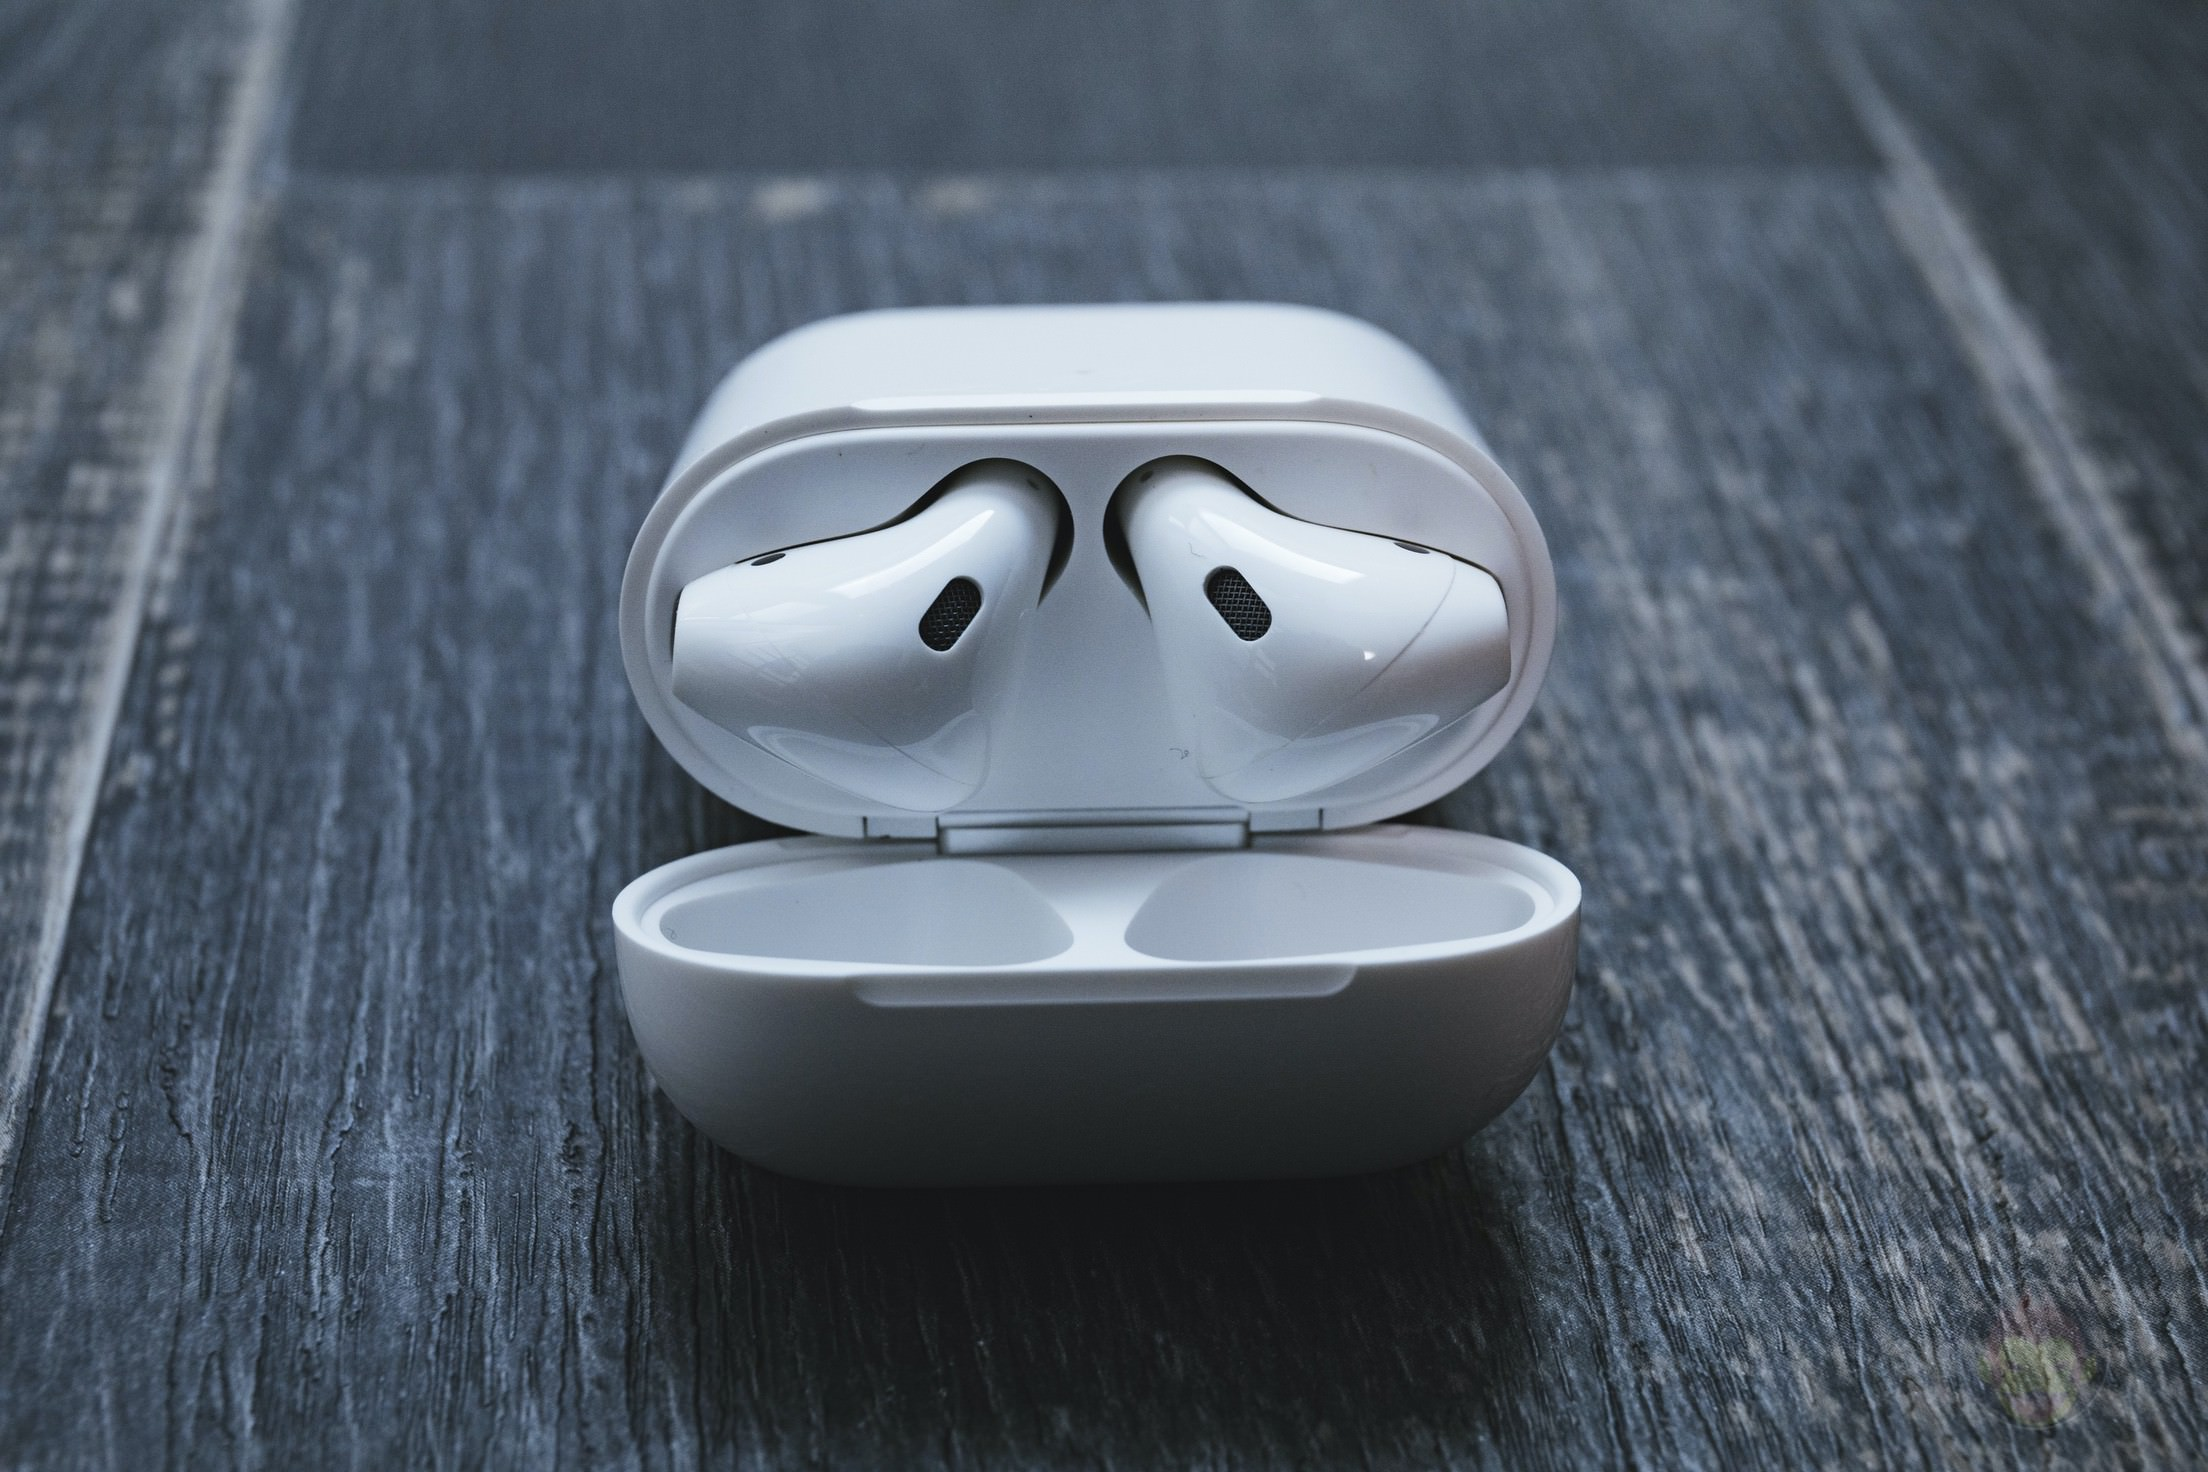 AirPods-2nd-Generation-2019-Review-07.jpg